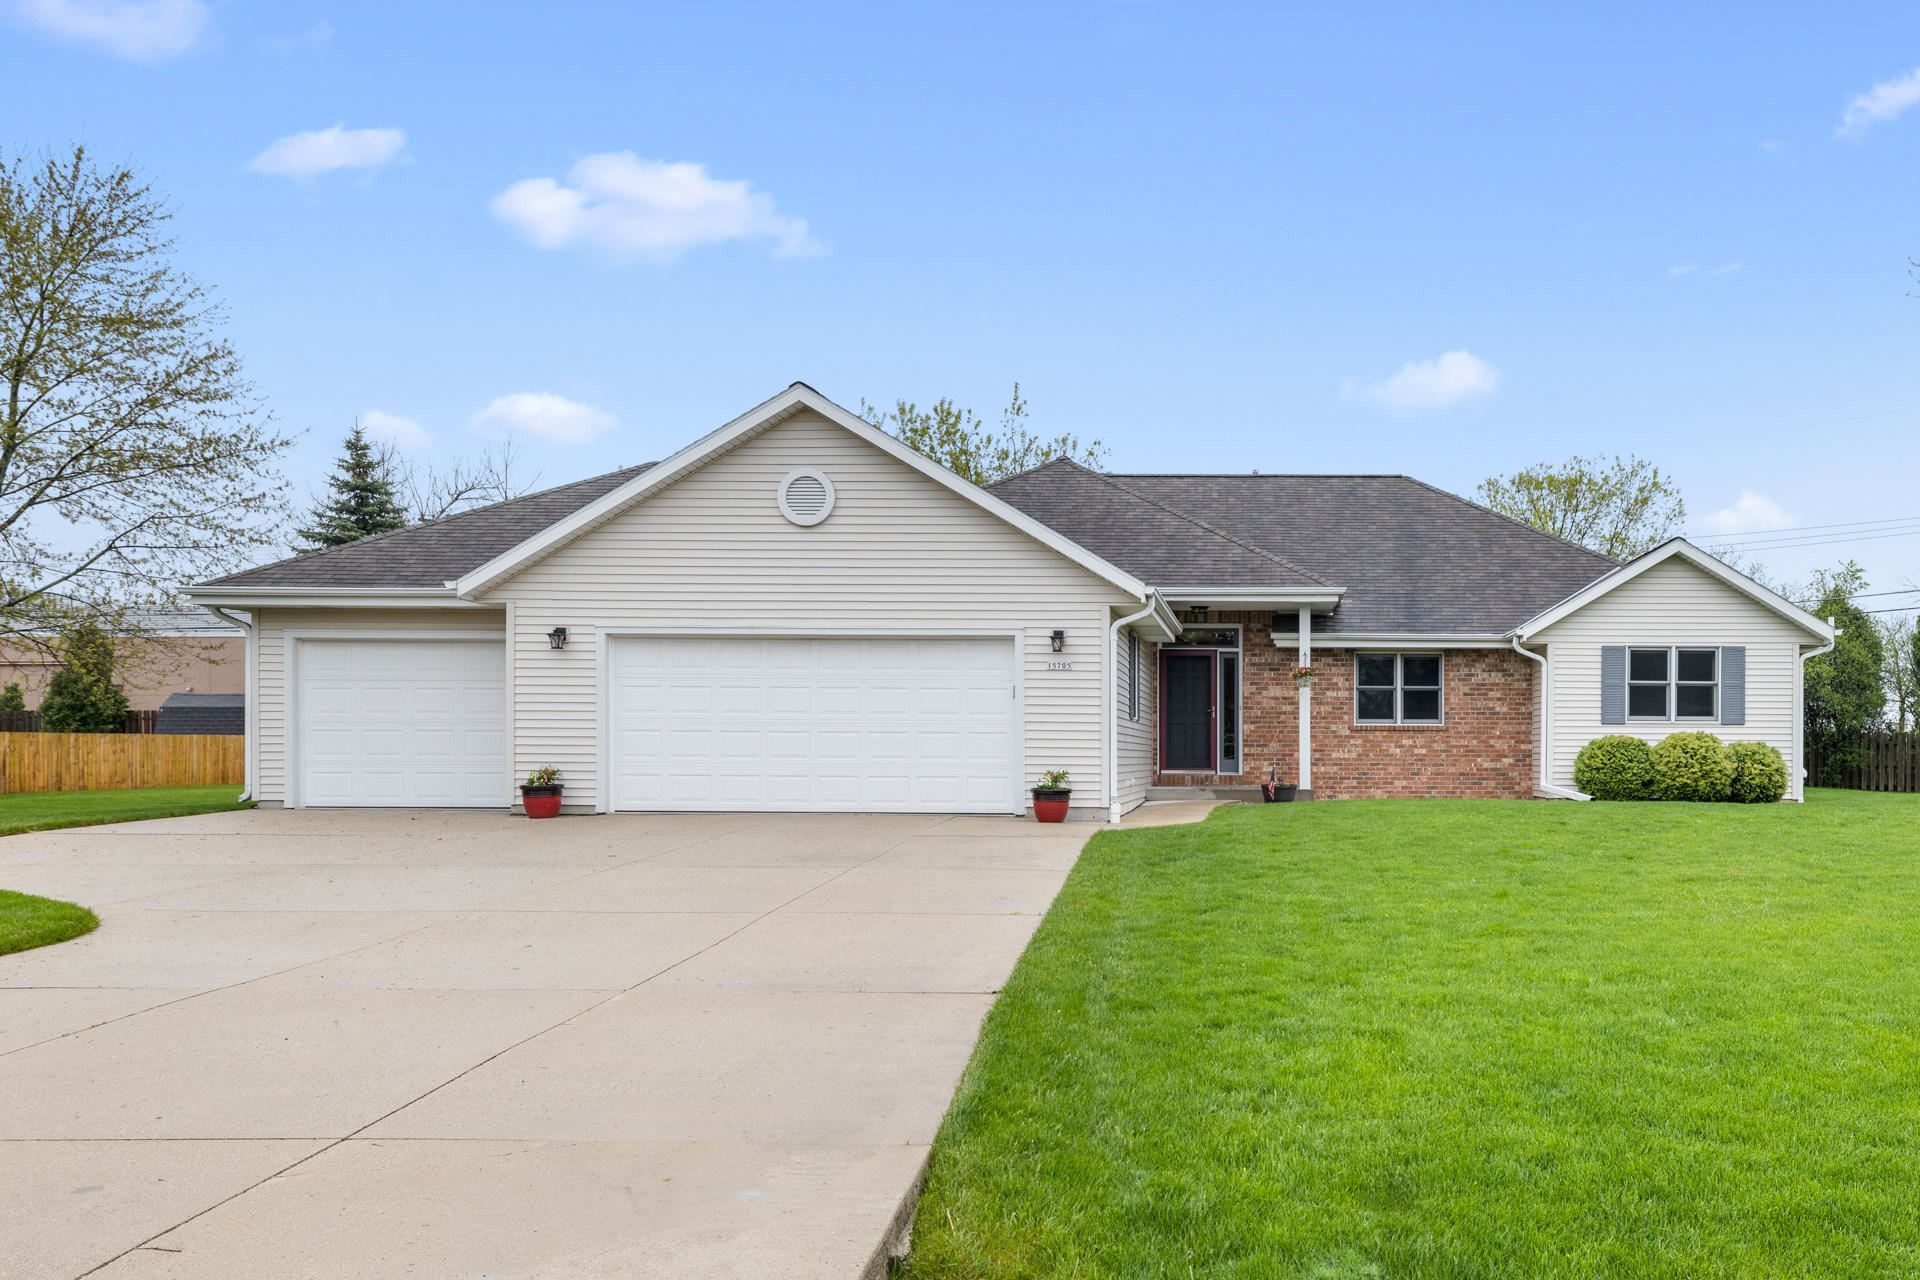 15705 W Churchview Dr, New Berlin, WI 53151 - #: 1689880